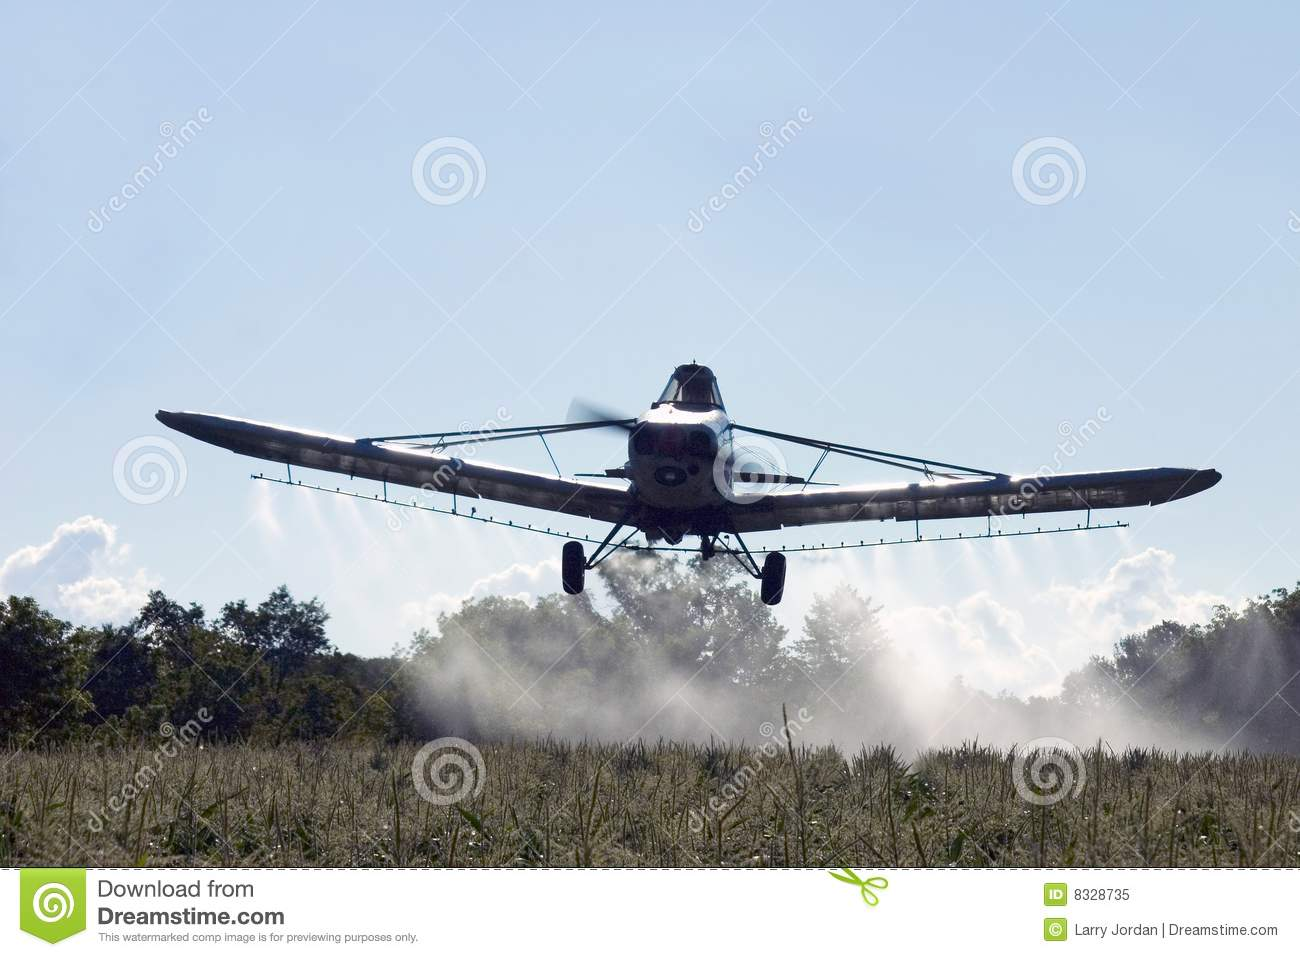 Crop spraying clipart #5